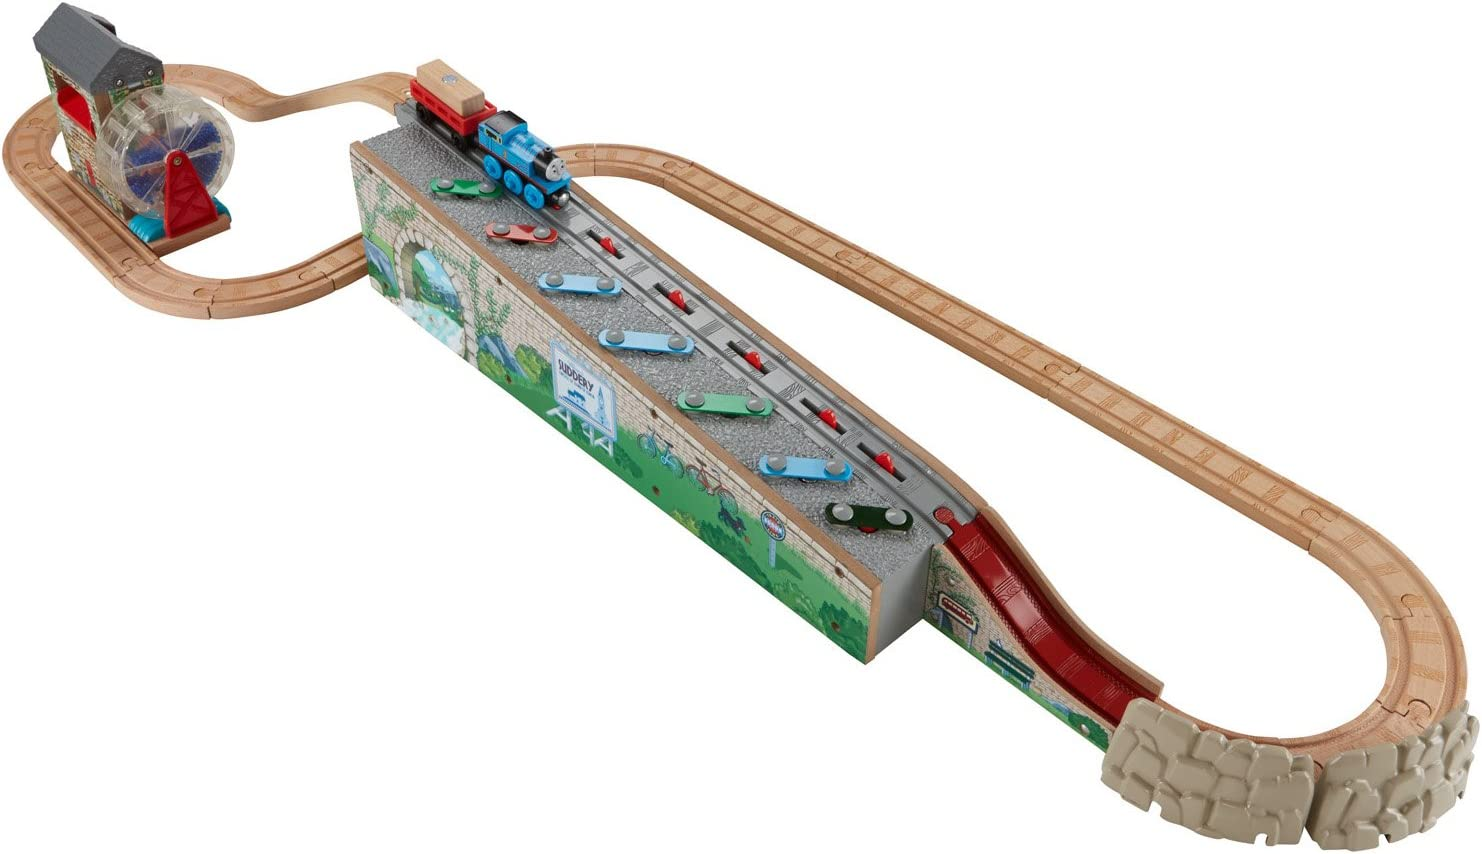 Thomas & Friends Wooden Railway Musical Melody Track Set